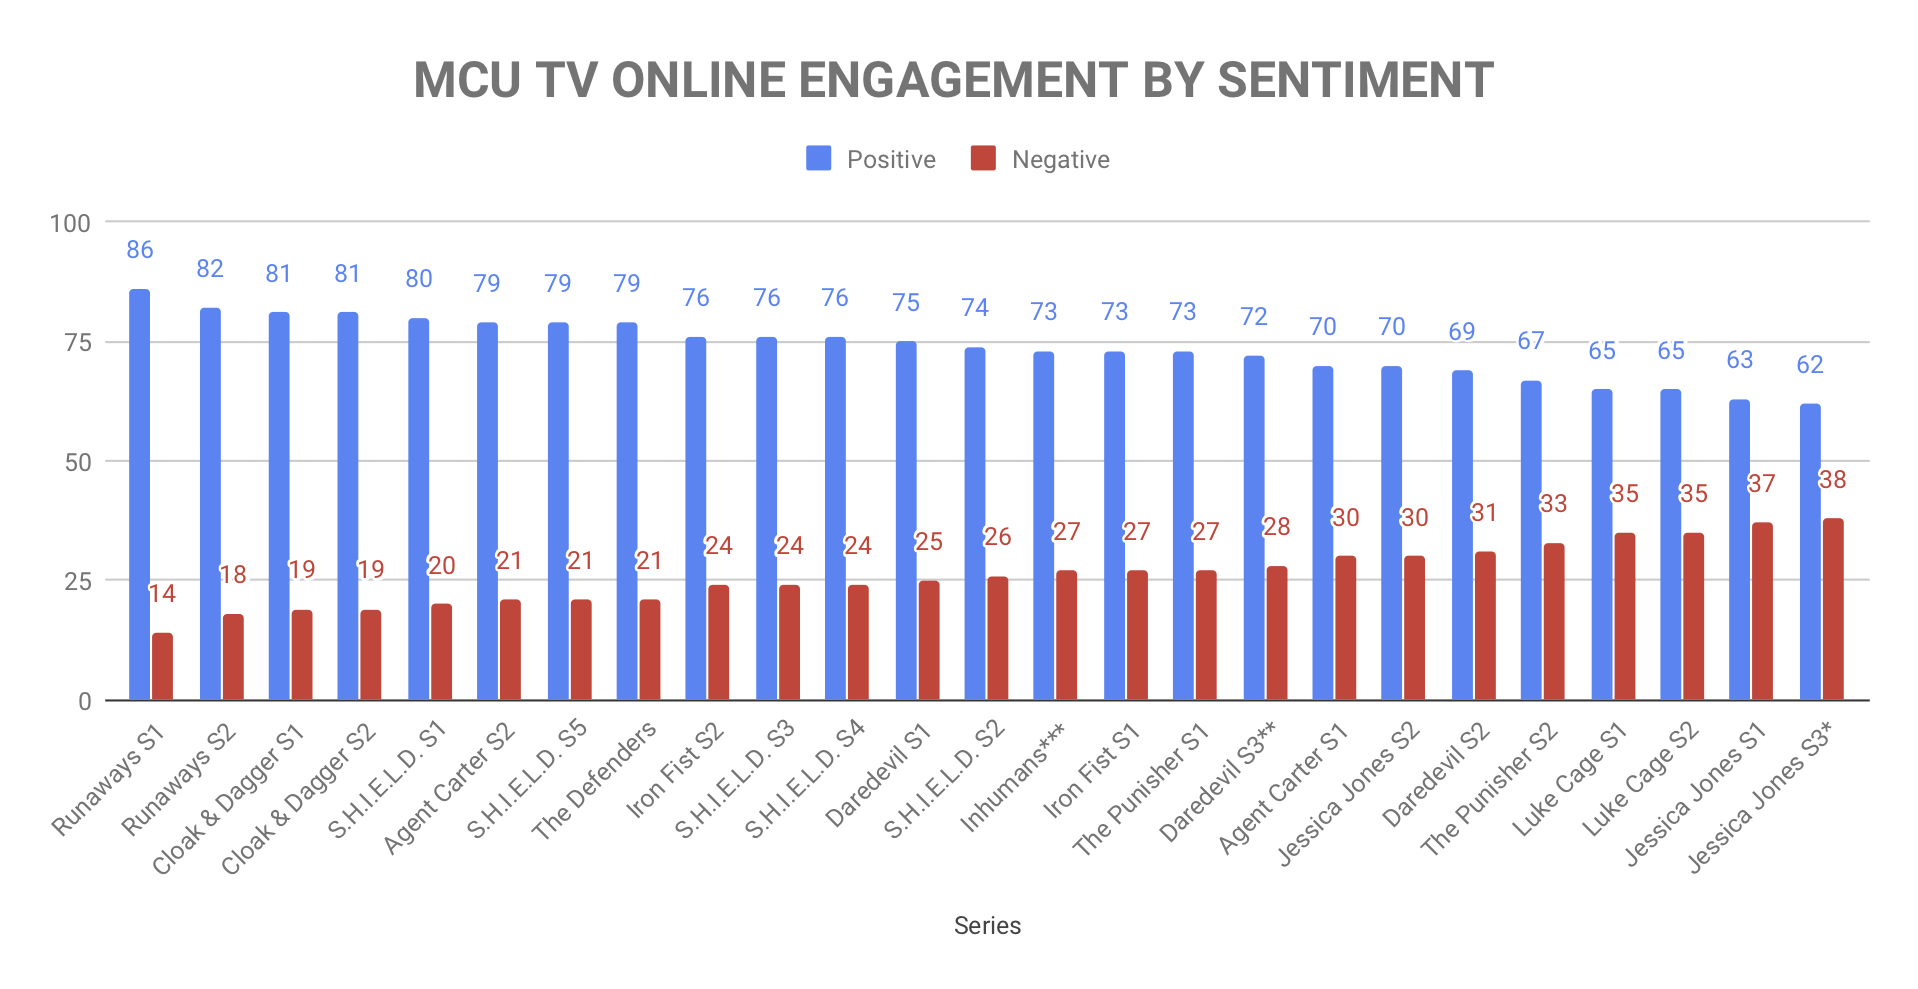 MCU TV ONLINE ENGAGEMENT BY SENTIMENT.jpg